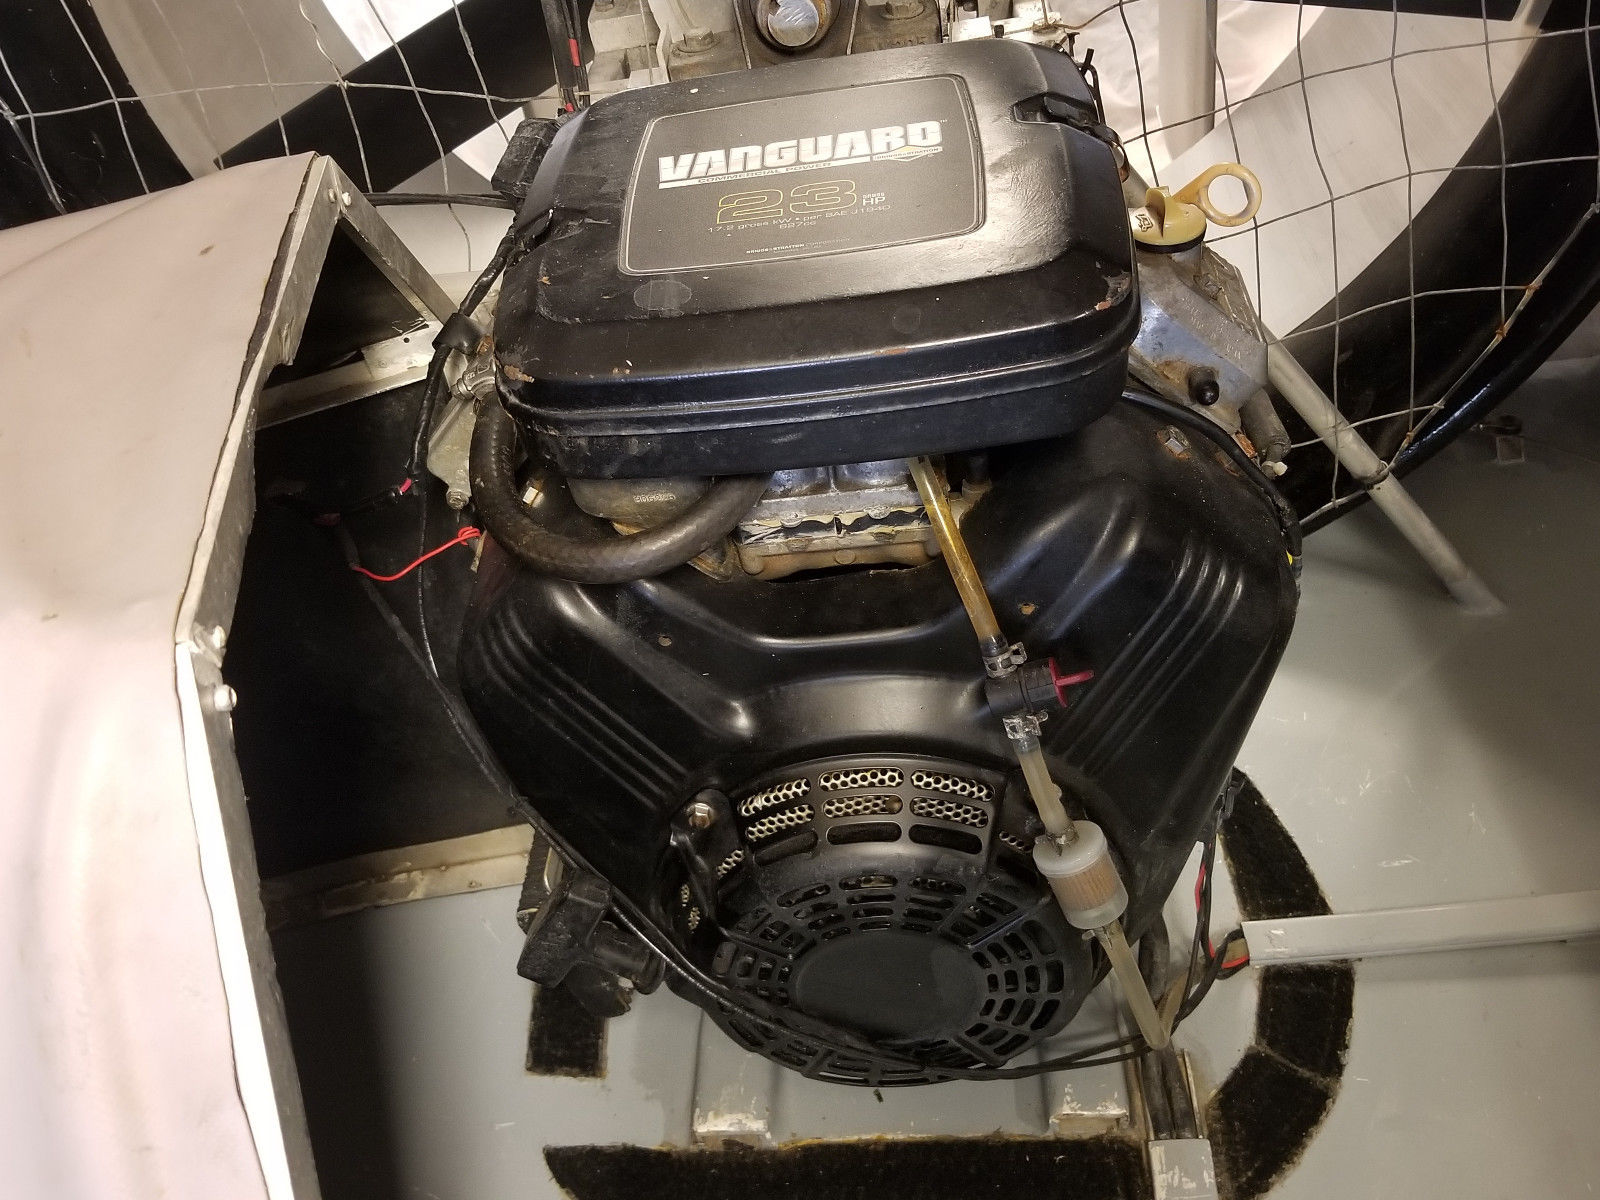 delorean hovercraft rear fan engine